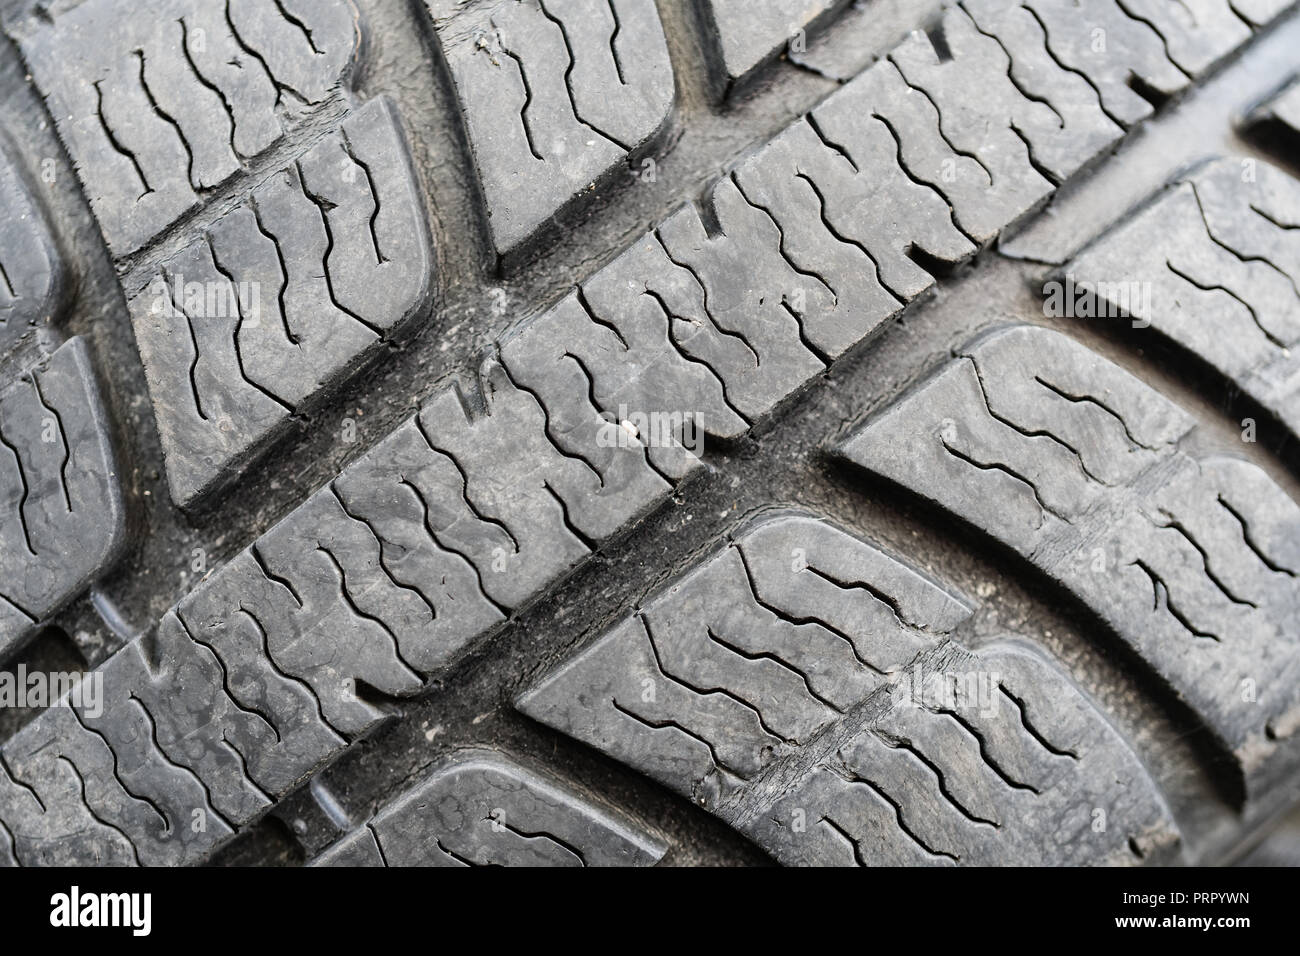 Closeup on worn out tire tread as a background. Evironmental friendly recycling concept. - Stock Image